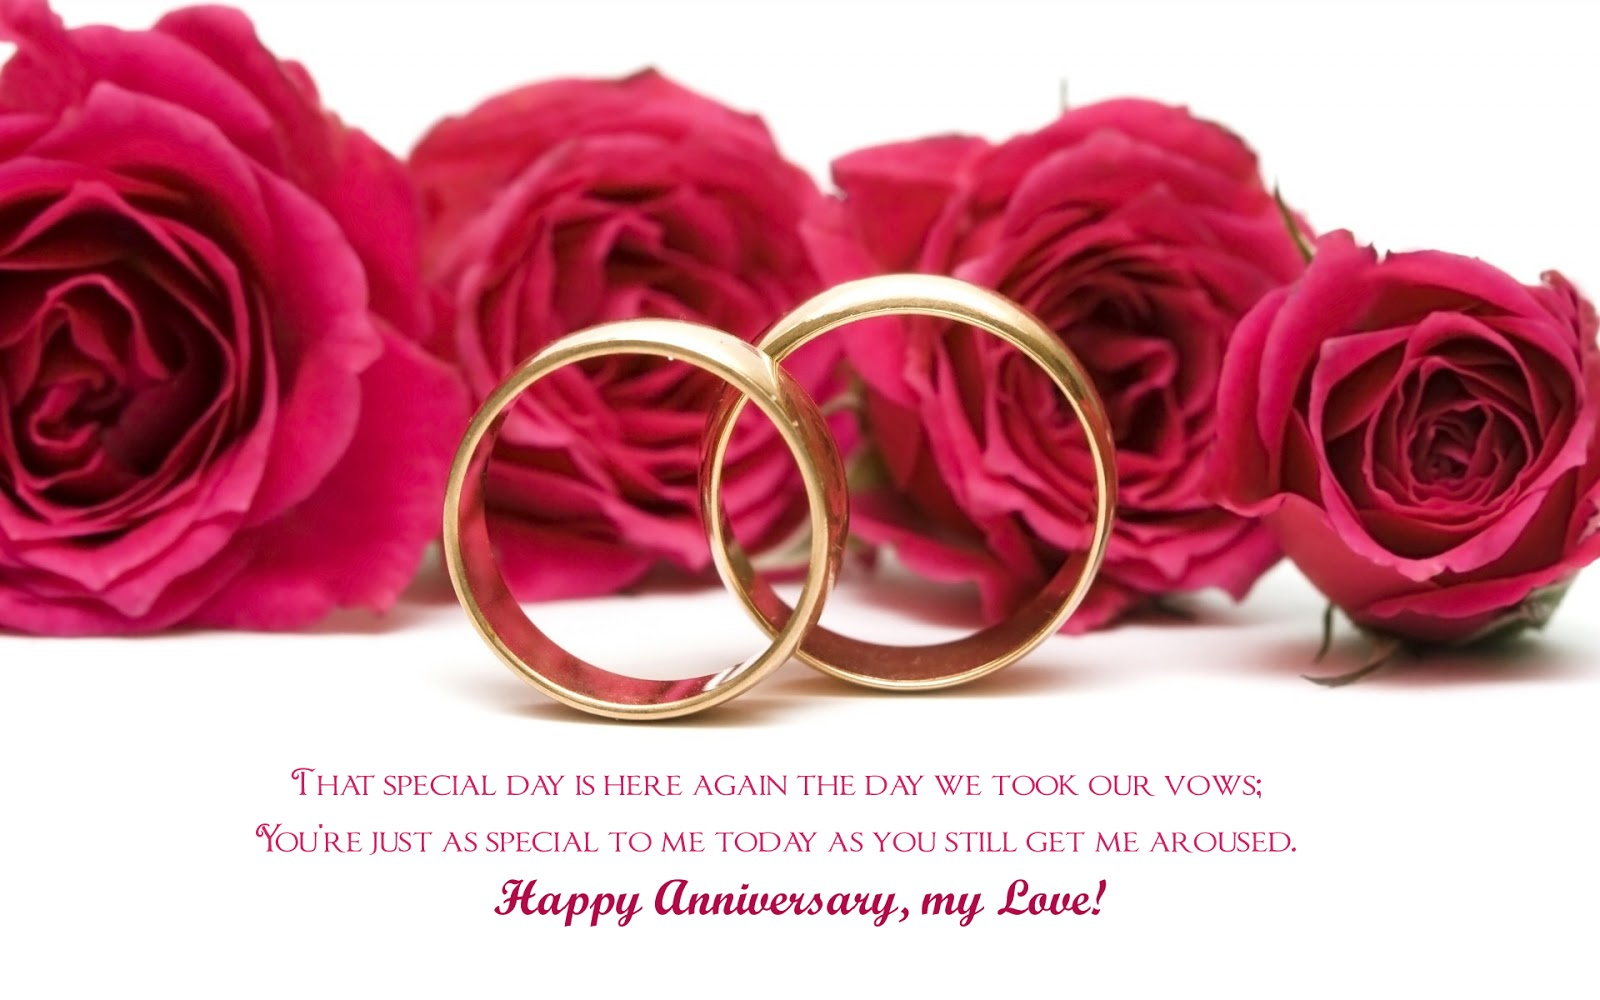 Wedding anniversary wishes images free download